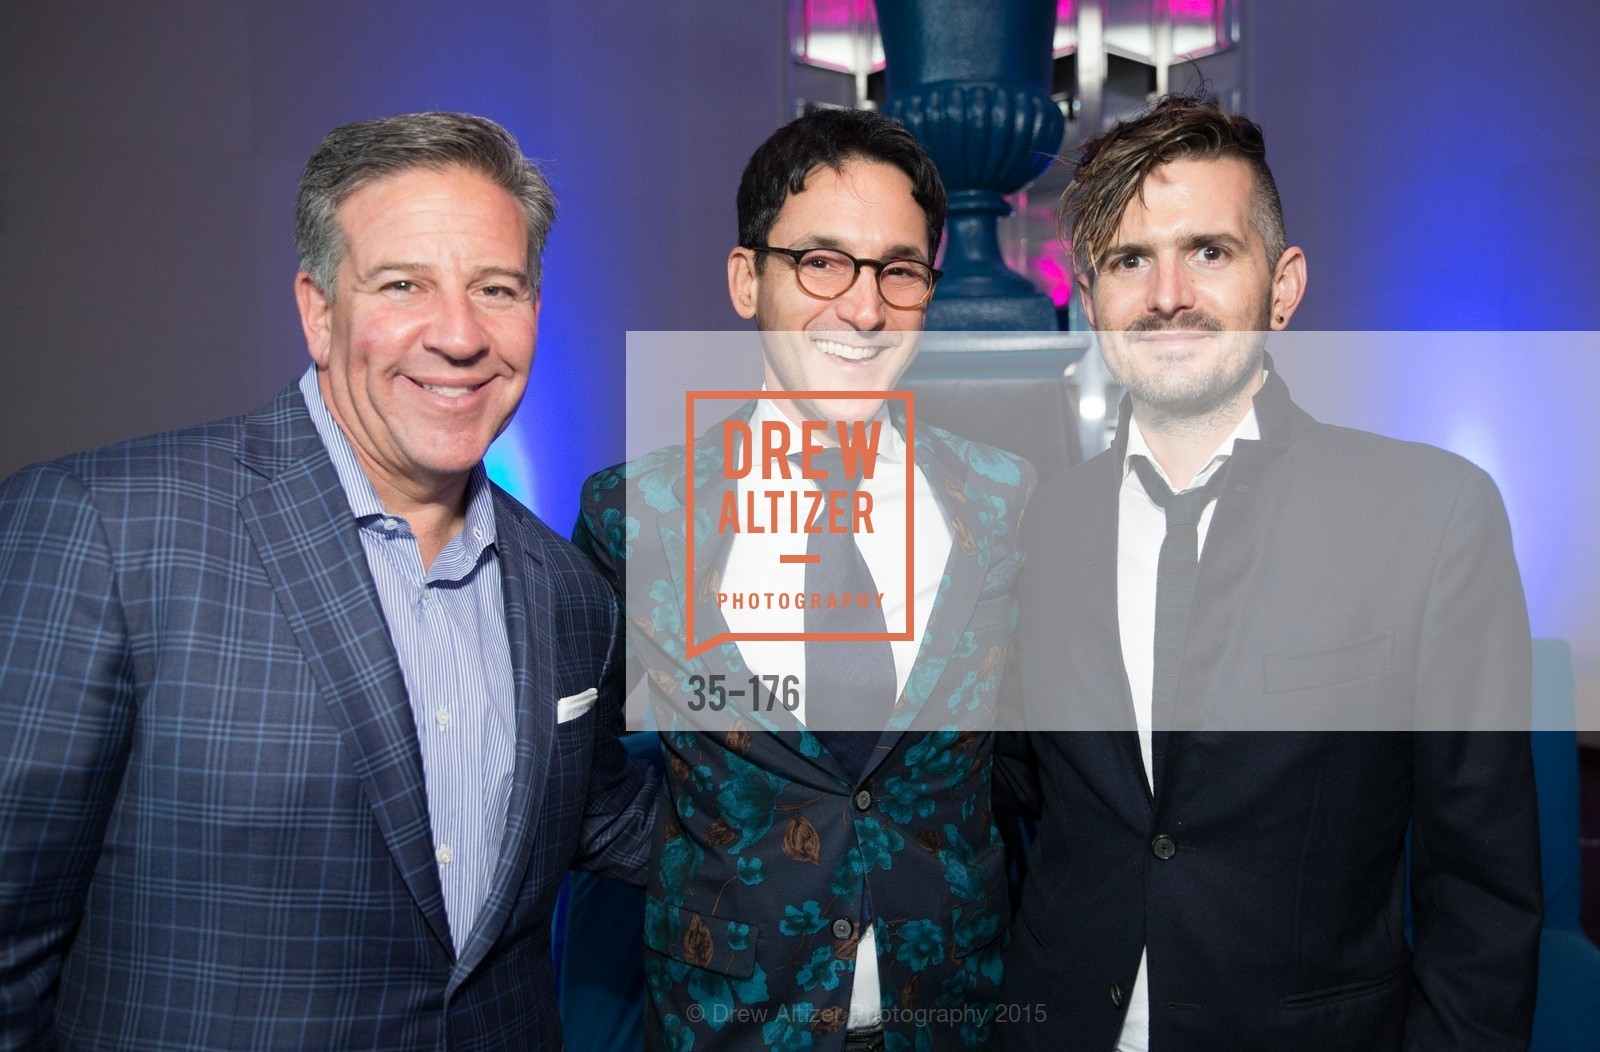 Gregg Lynn, James Krohn, Jess Kelley, VIP Pride Celebration 2015, St. Regis, June 18th, 2015,Drew Altizer, Drew Altizer Photography, full-service agency, private events, San Francisco photographer, photographer california